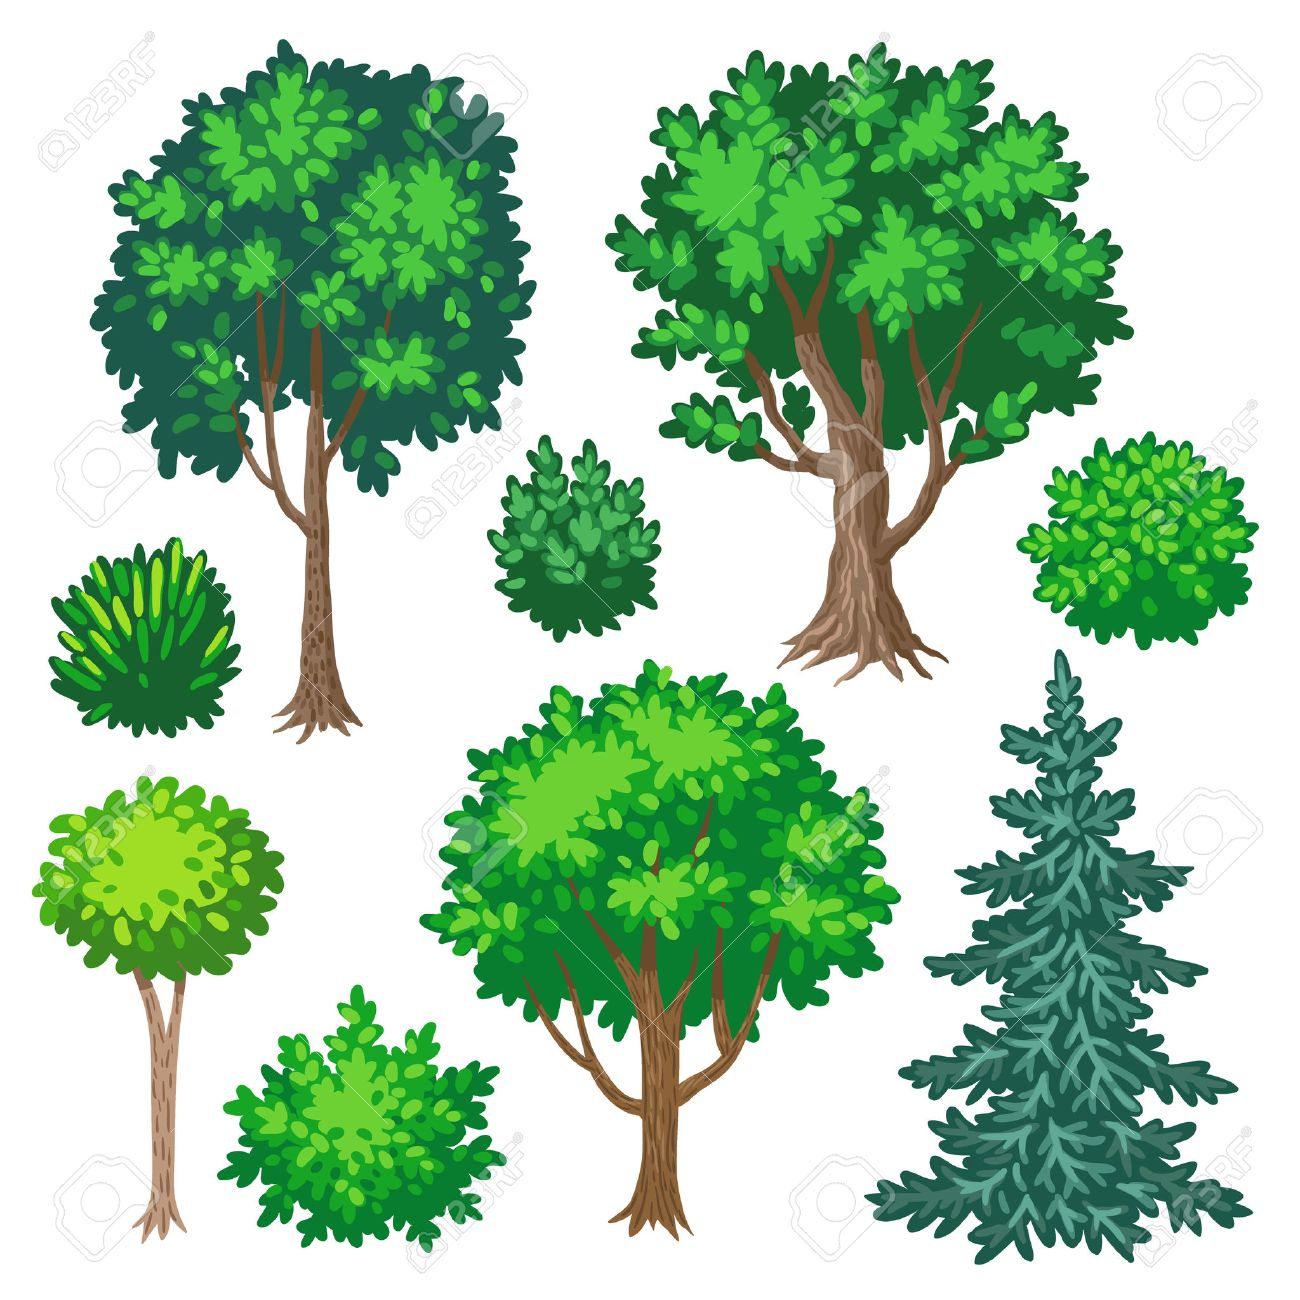 Trees And Shrubs Set Of Cartoon Trees And Shrubs Isolated On White Background